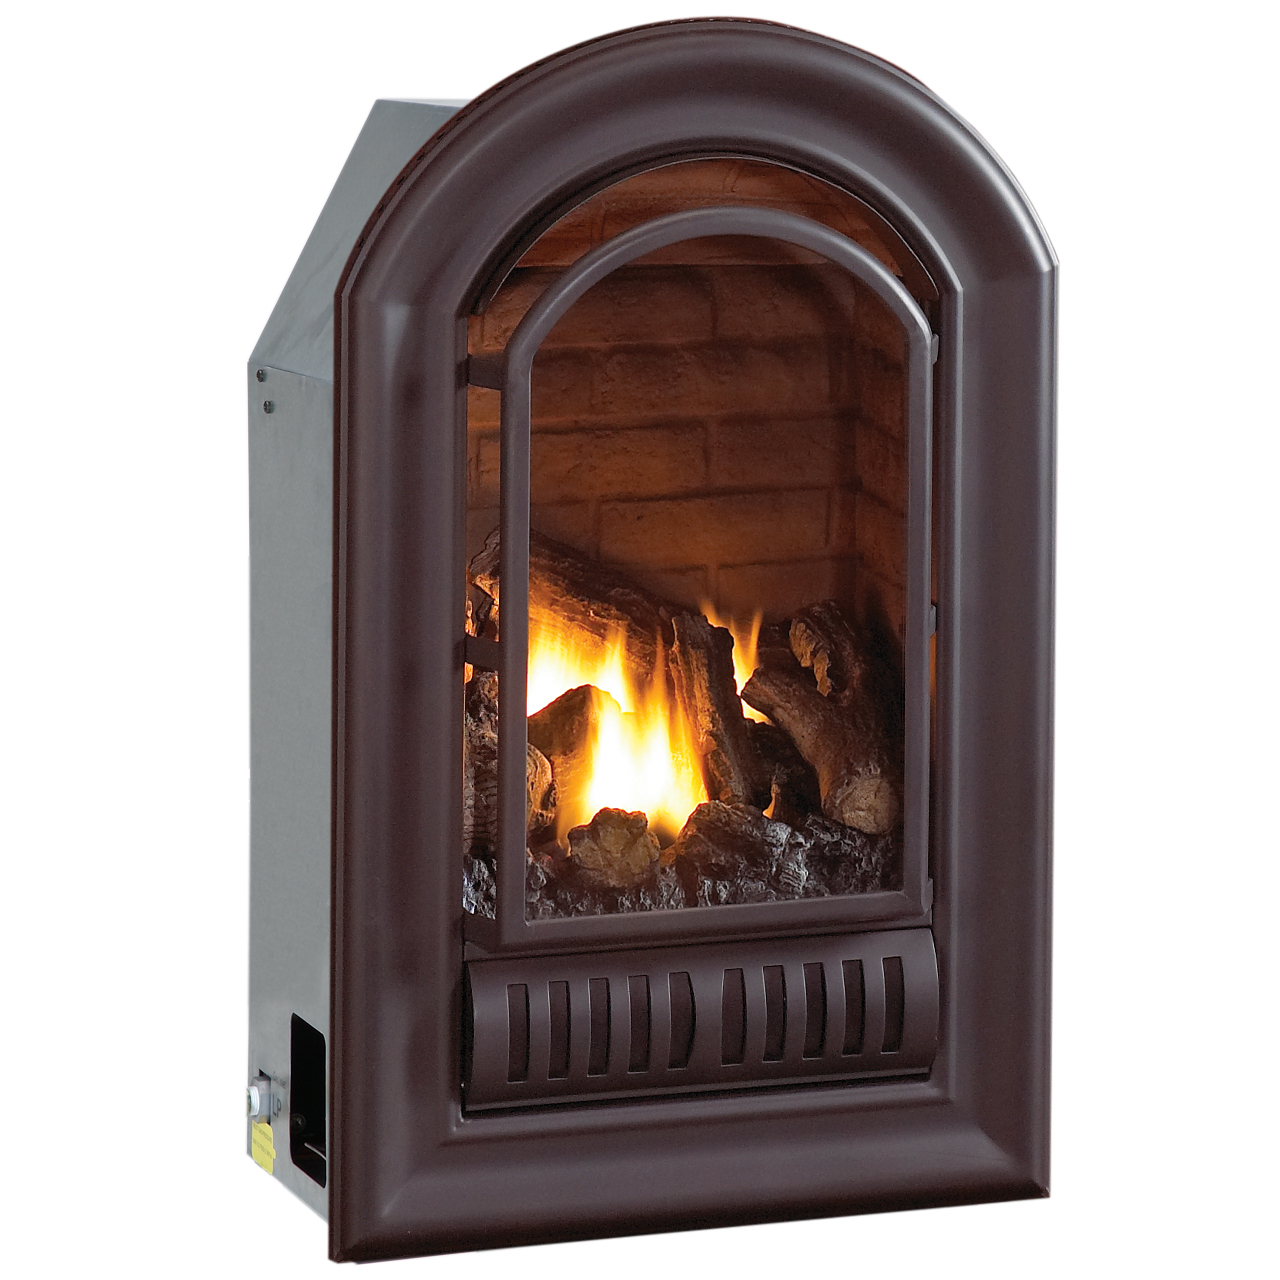 Hearthsense A Series Liquid Propane Ventless Fireplace Insert